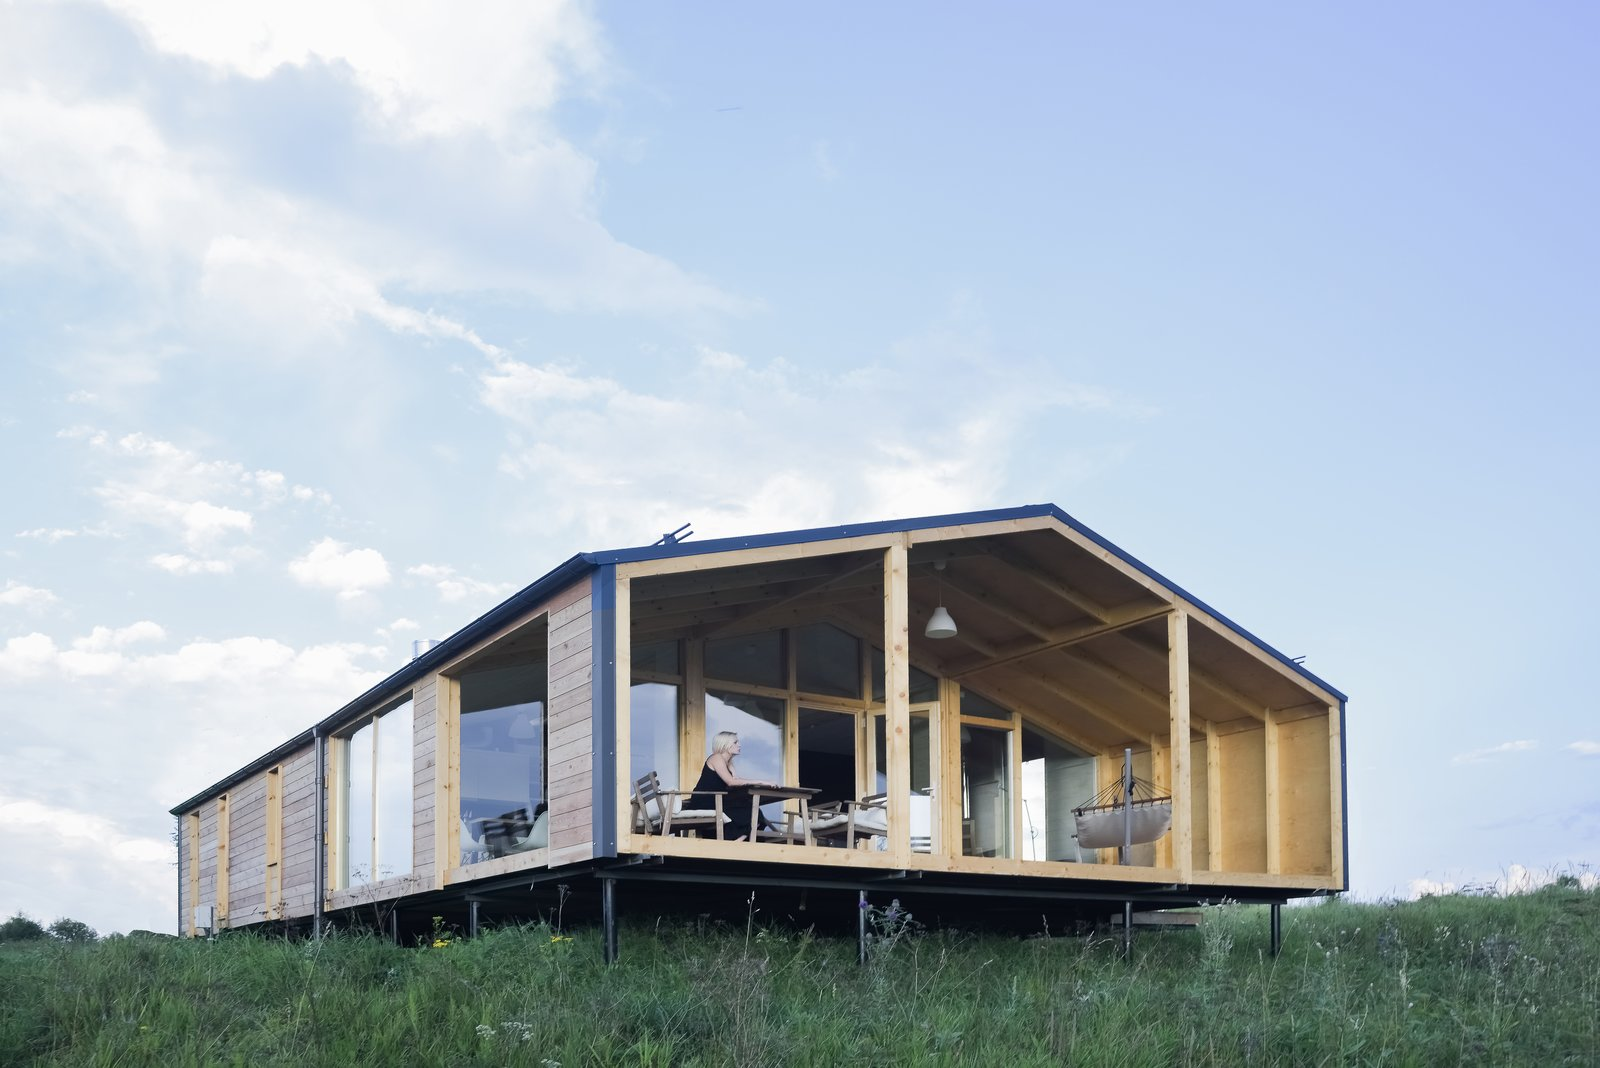 DublDom Prefab Homes Can Be Built in One Day